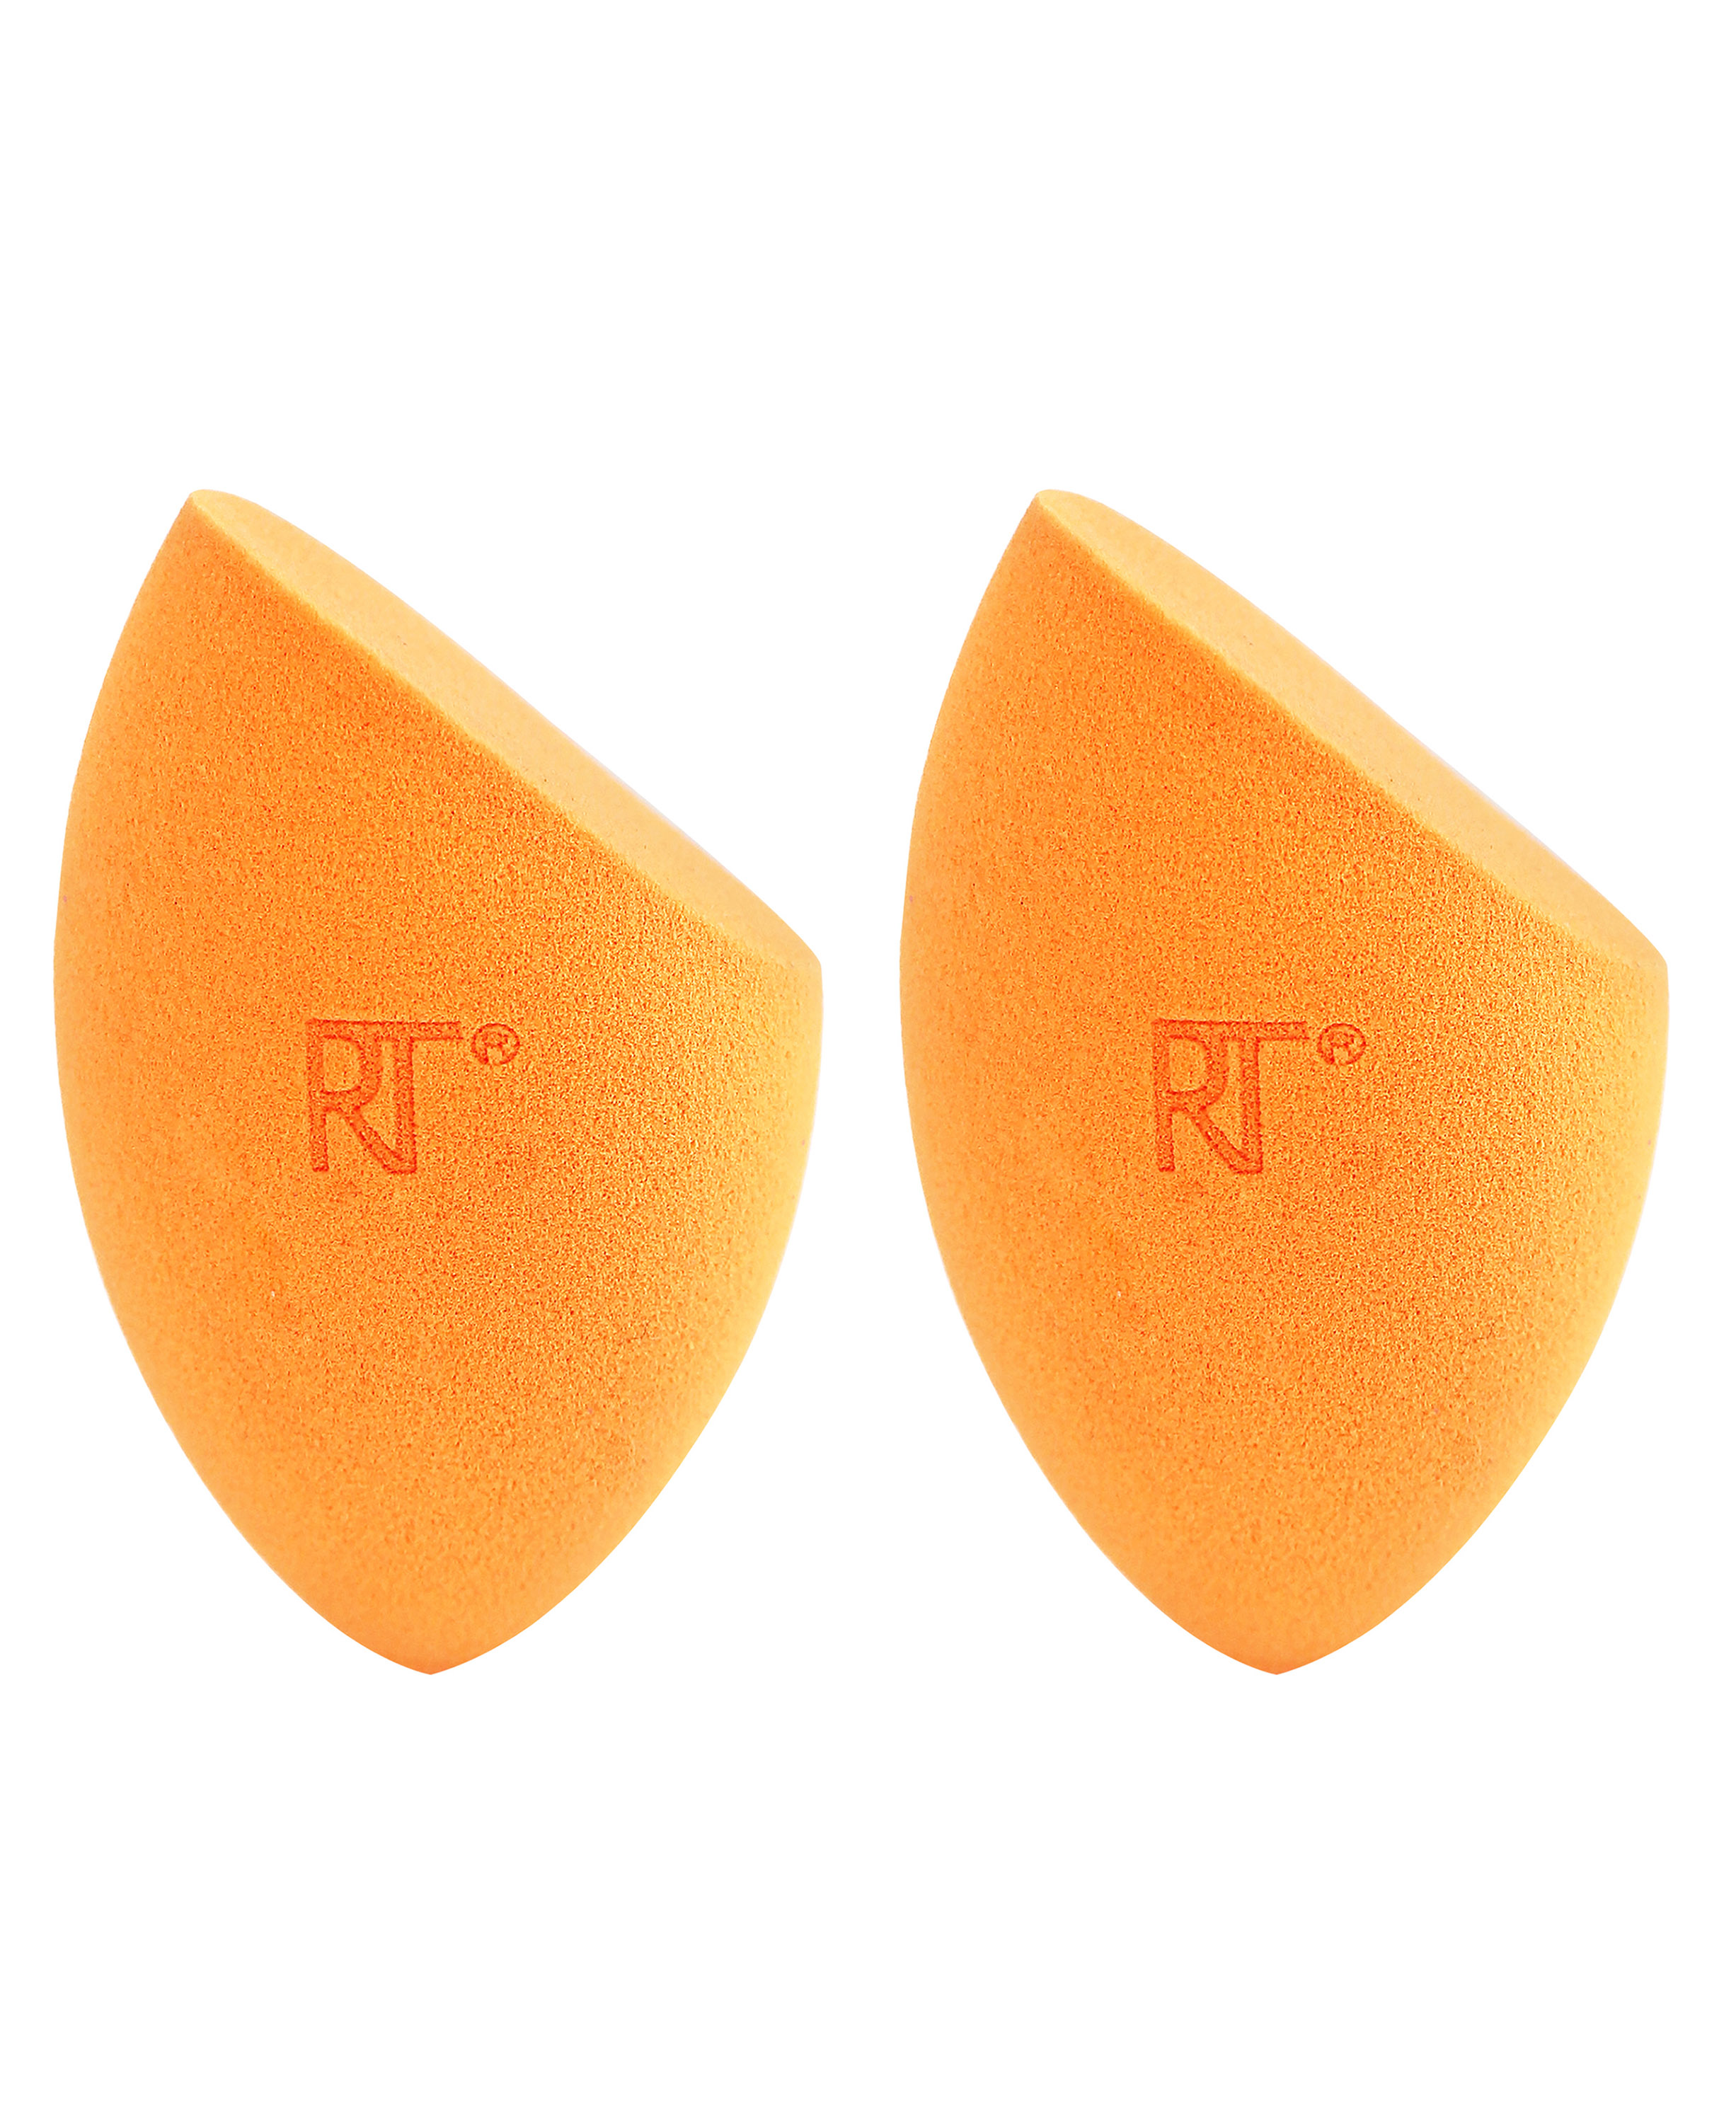 Real Techniques Miracle Complexion Sponges, 2 stk